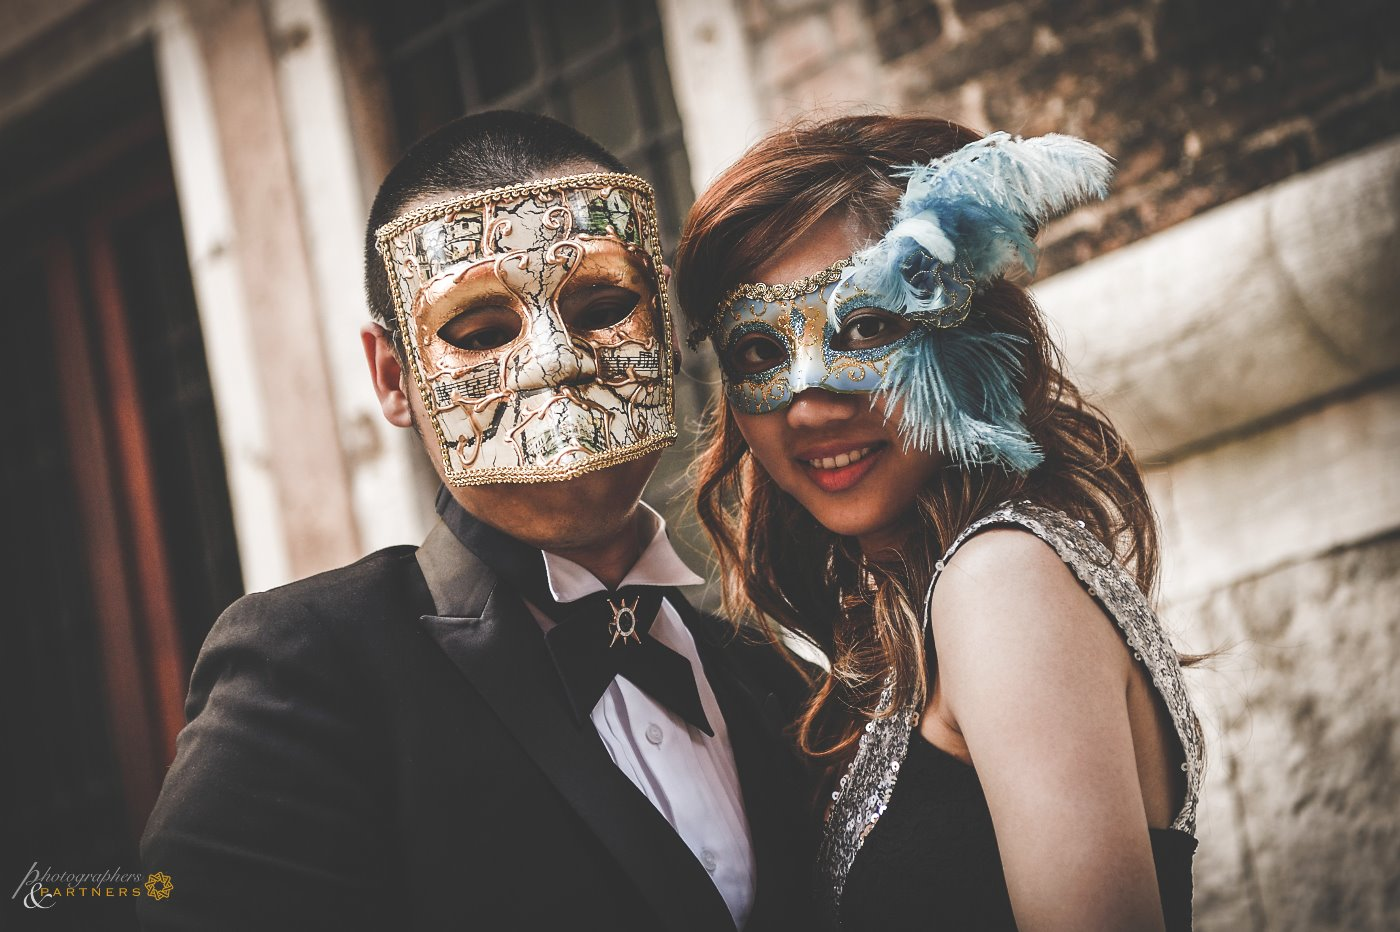 Ray & Irene with the famous Venetian Carnival masks.